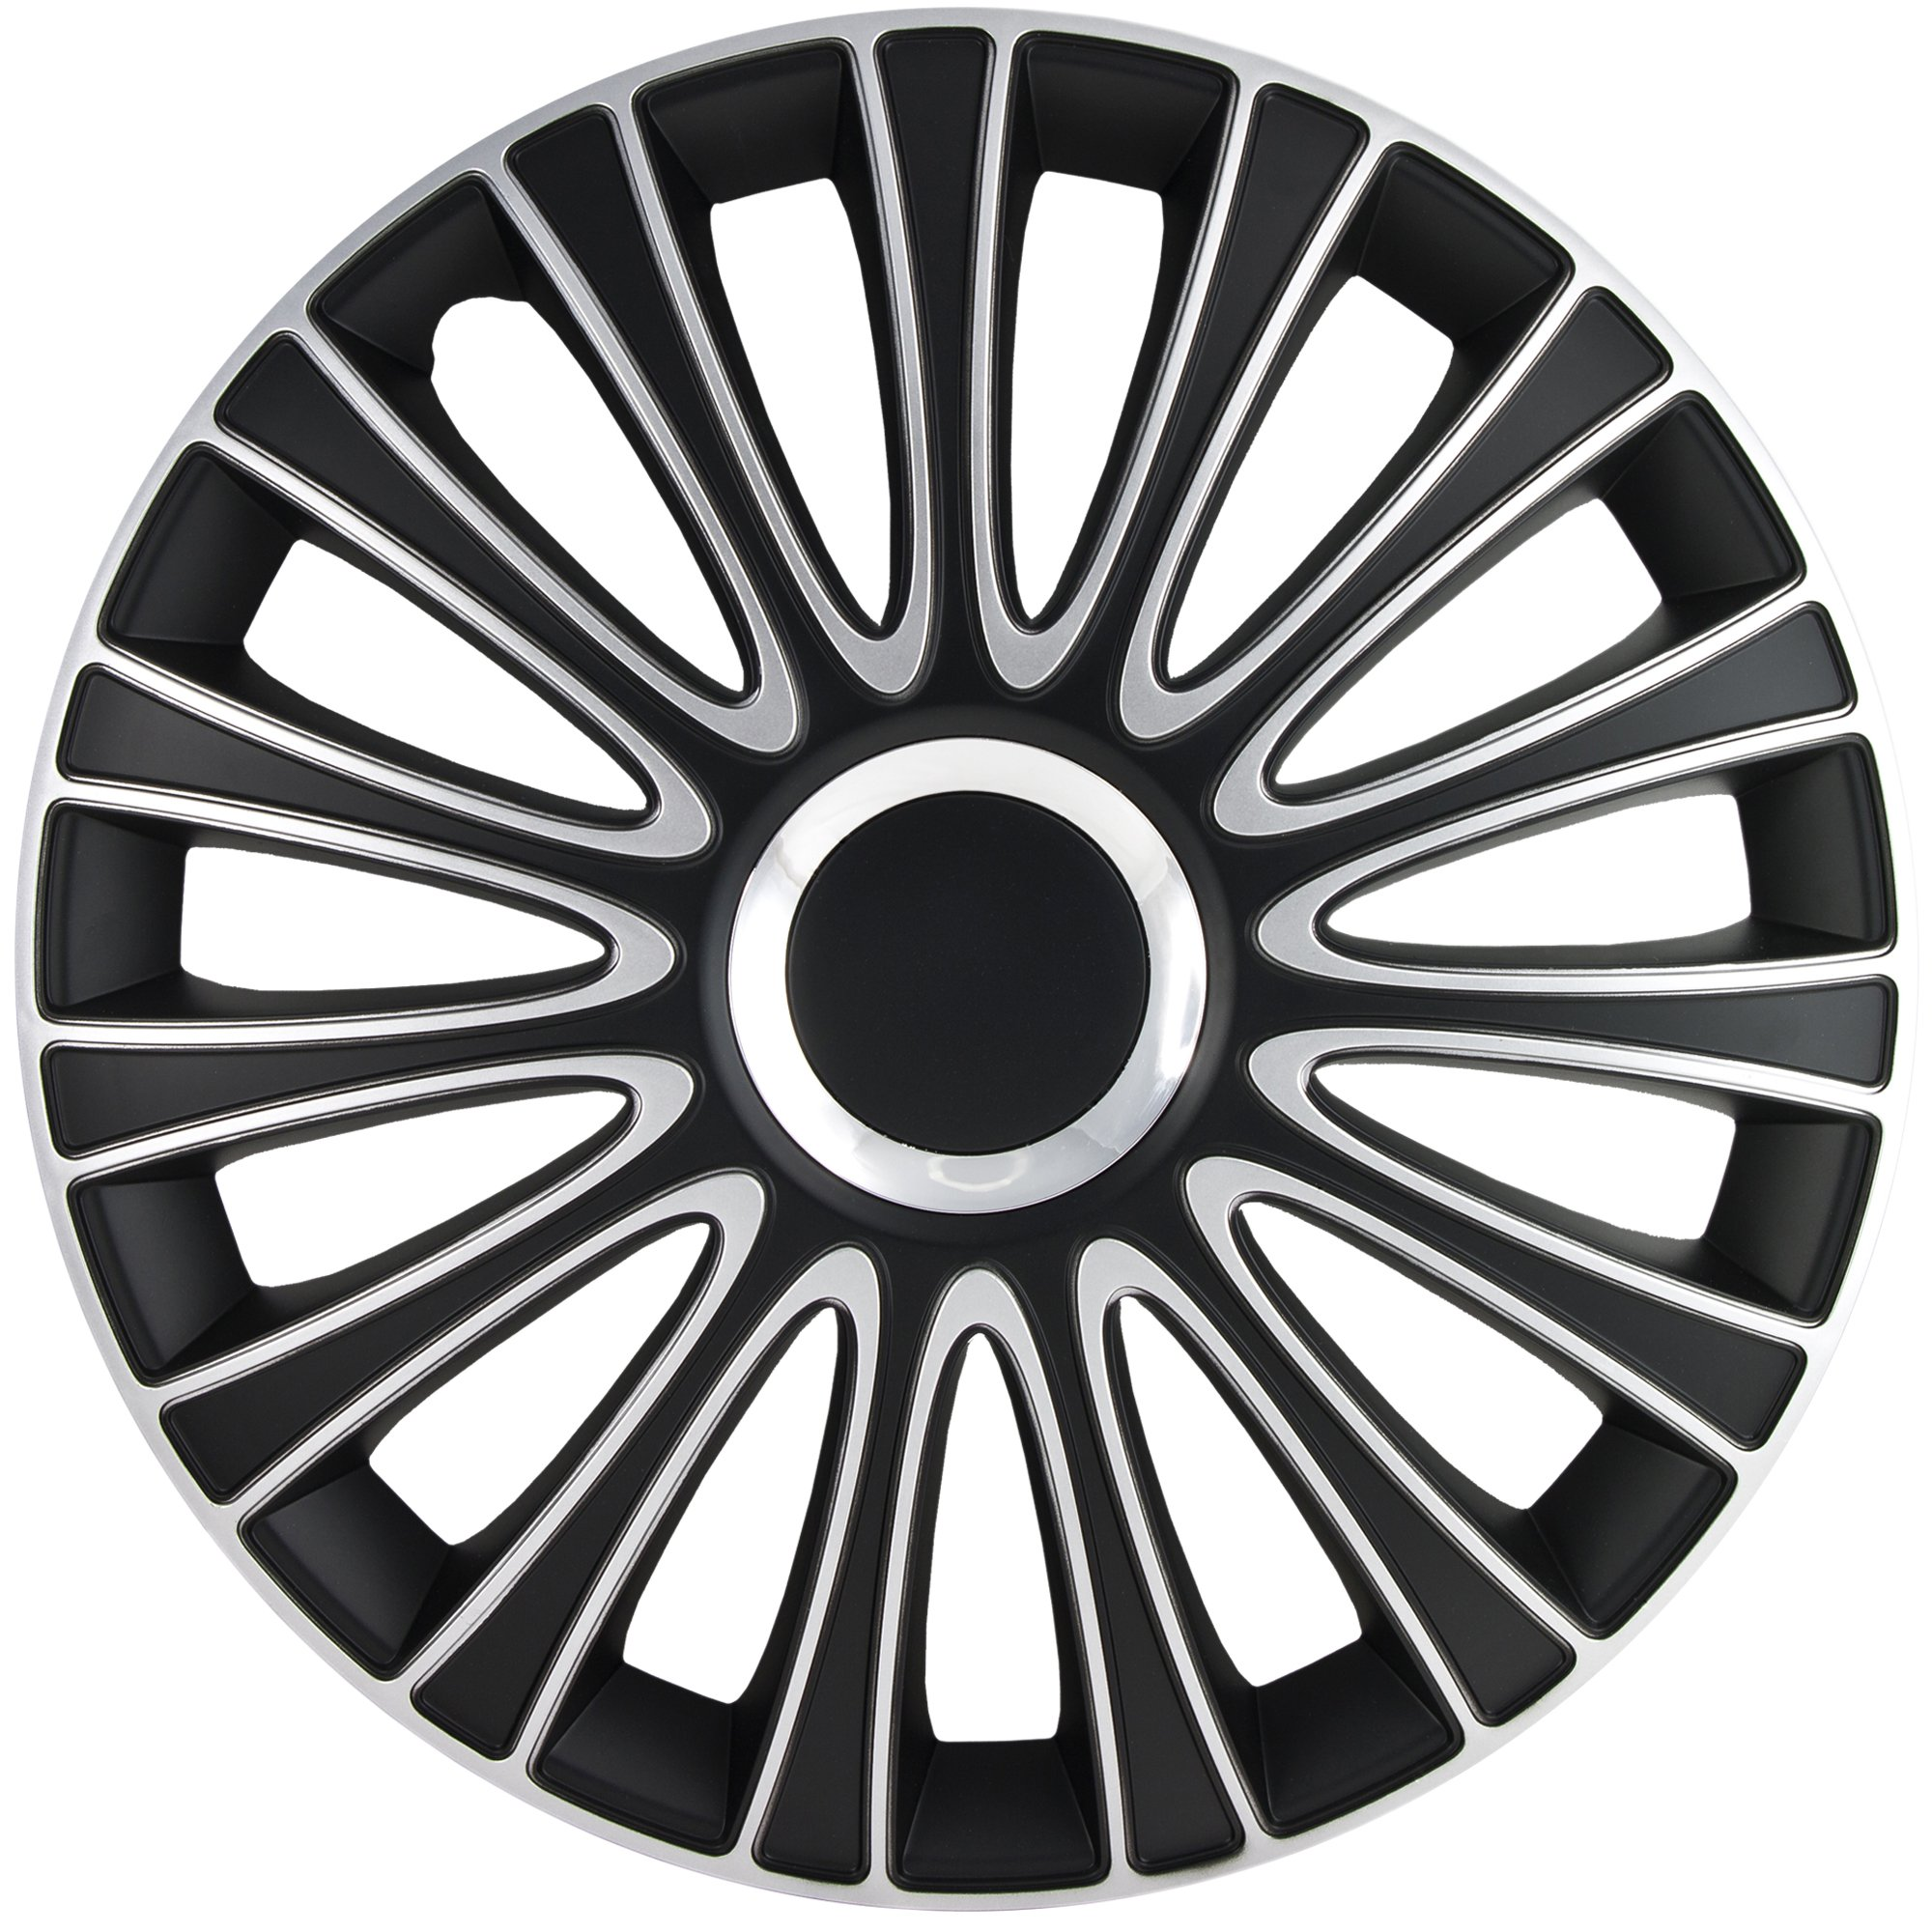 Alpena 59916 Le Mans Black-Silver Wheel Cover Kit - 16-Inches - Pack of 4